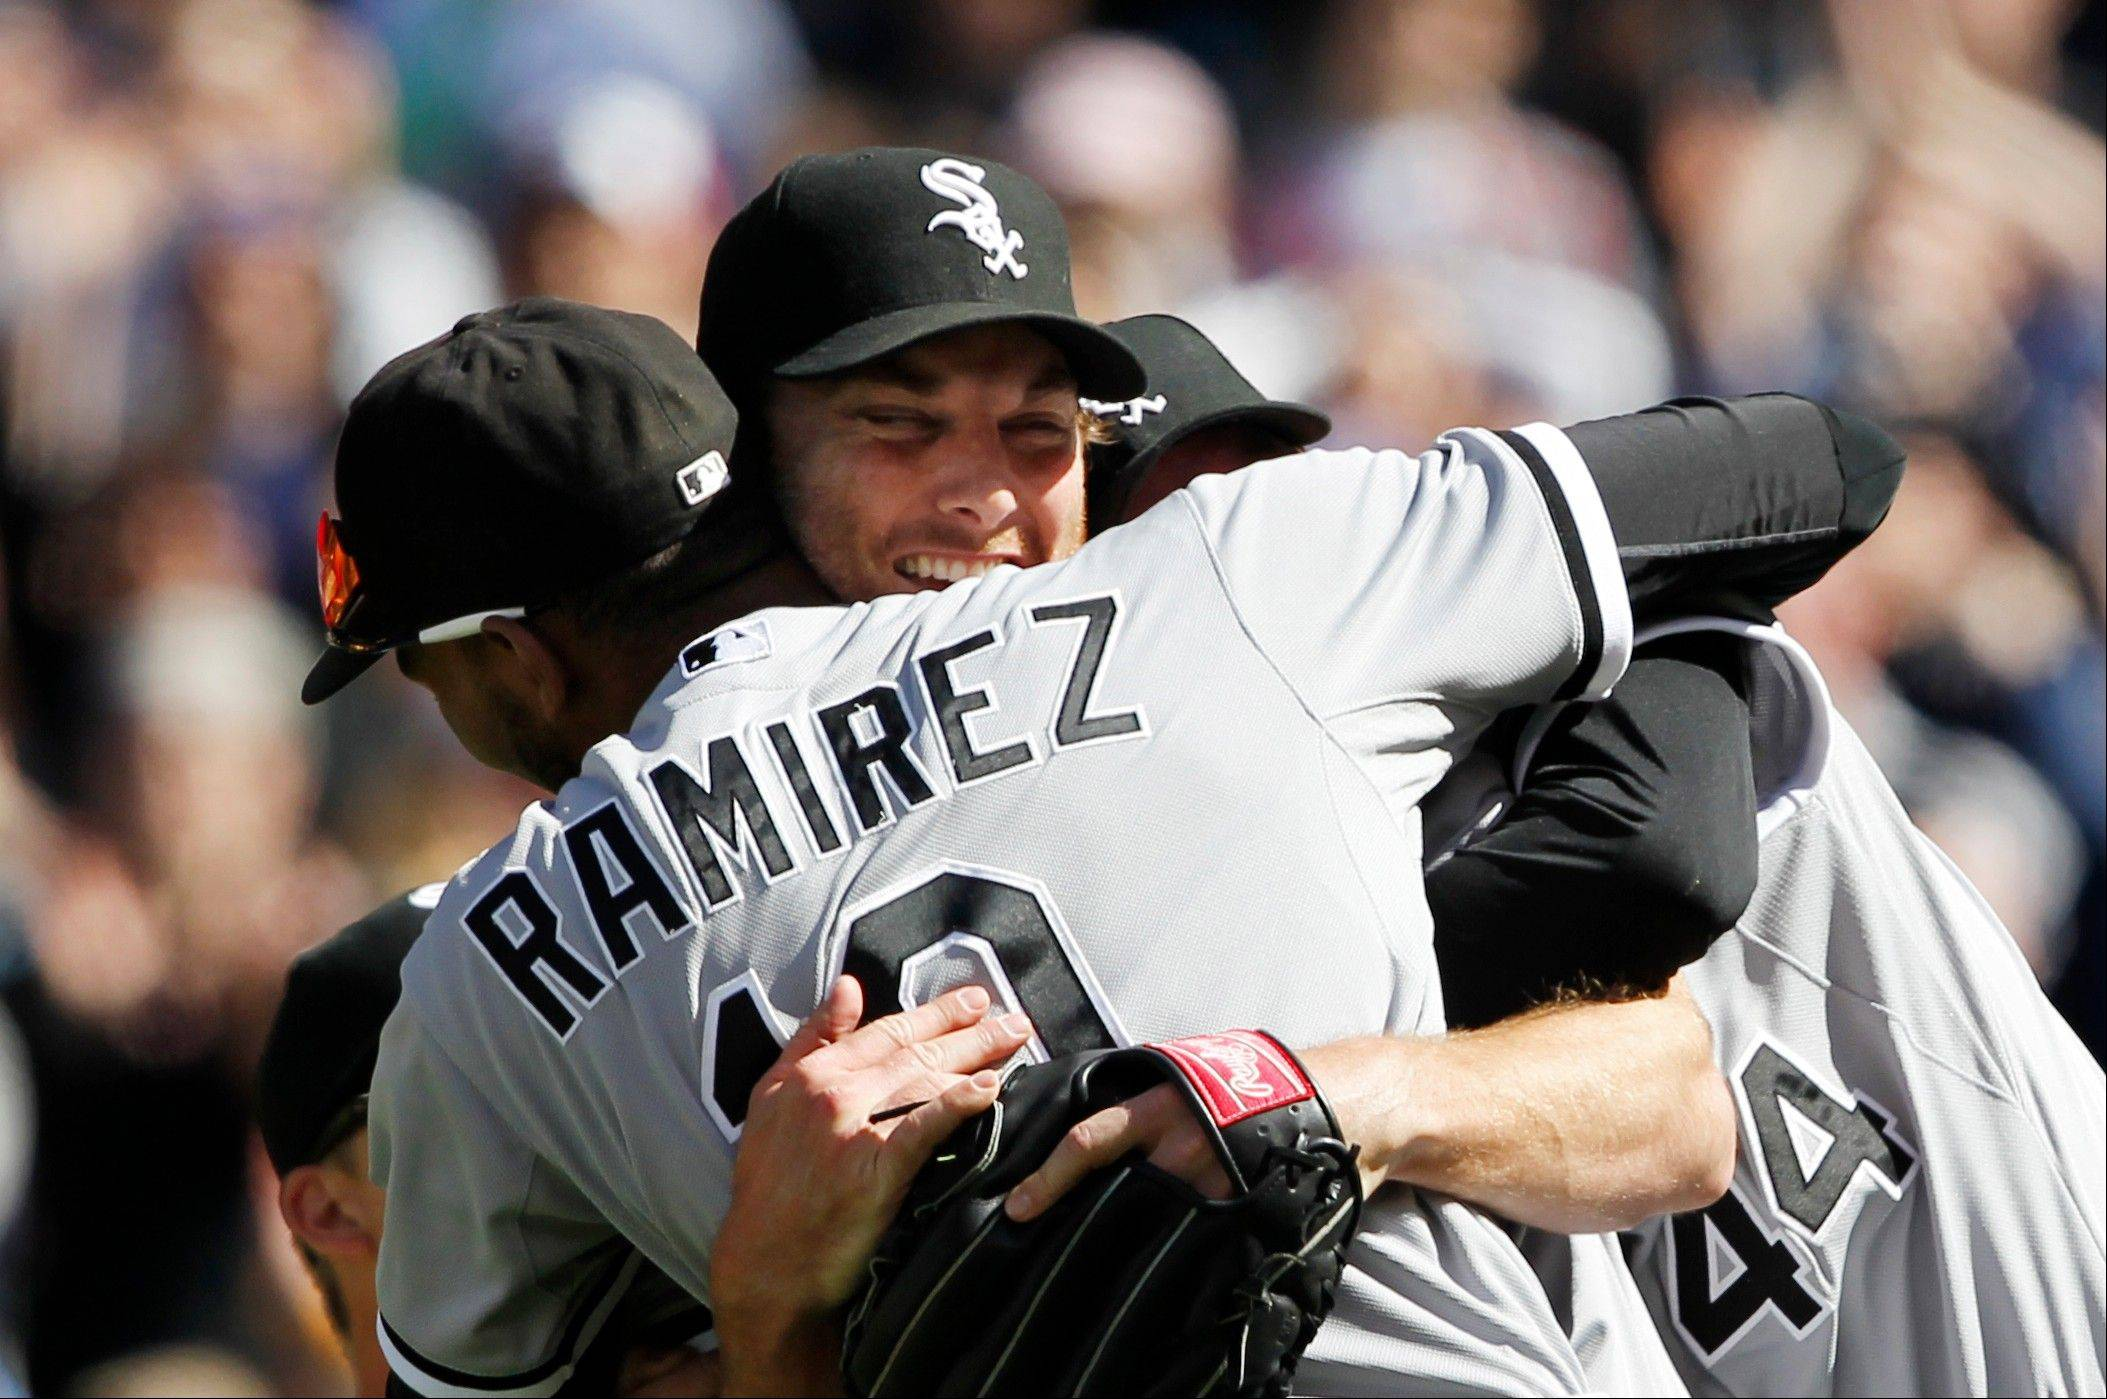 White Sox starting pitcher Philip Humber, center, is mobbed by teammates Saturday after pitching a perfect game.